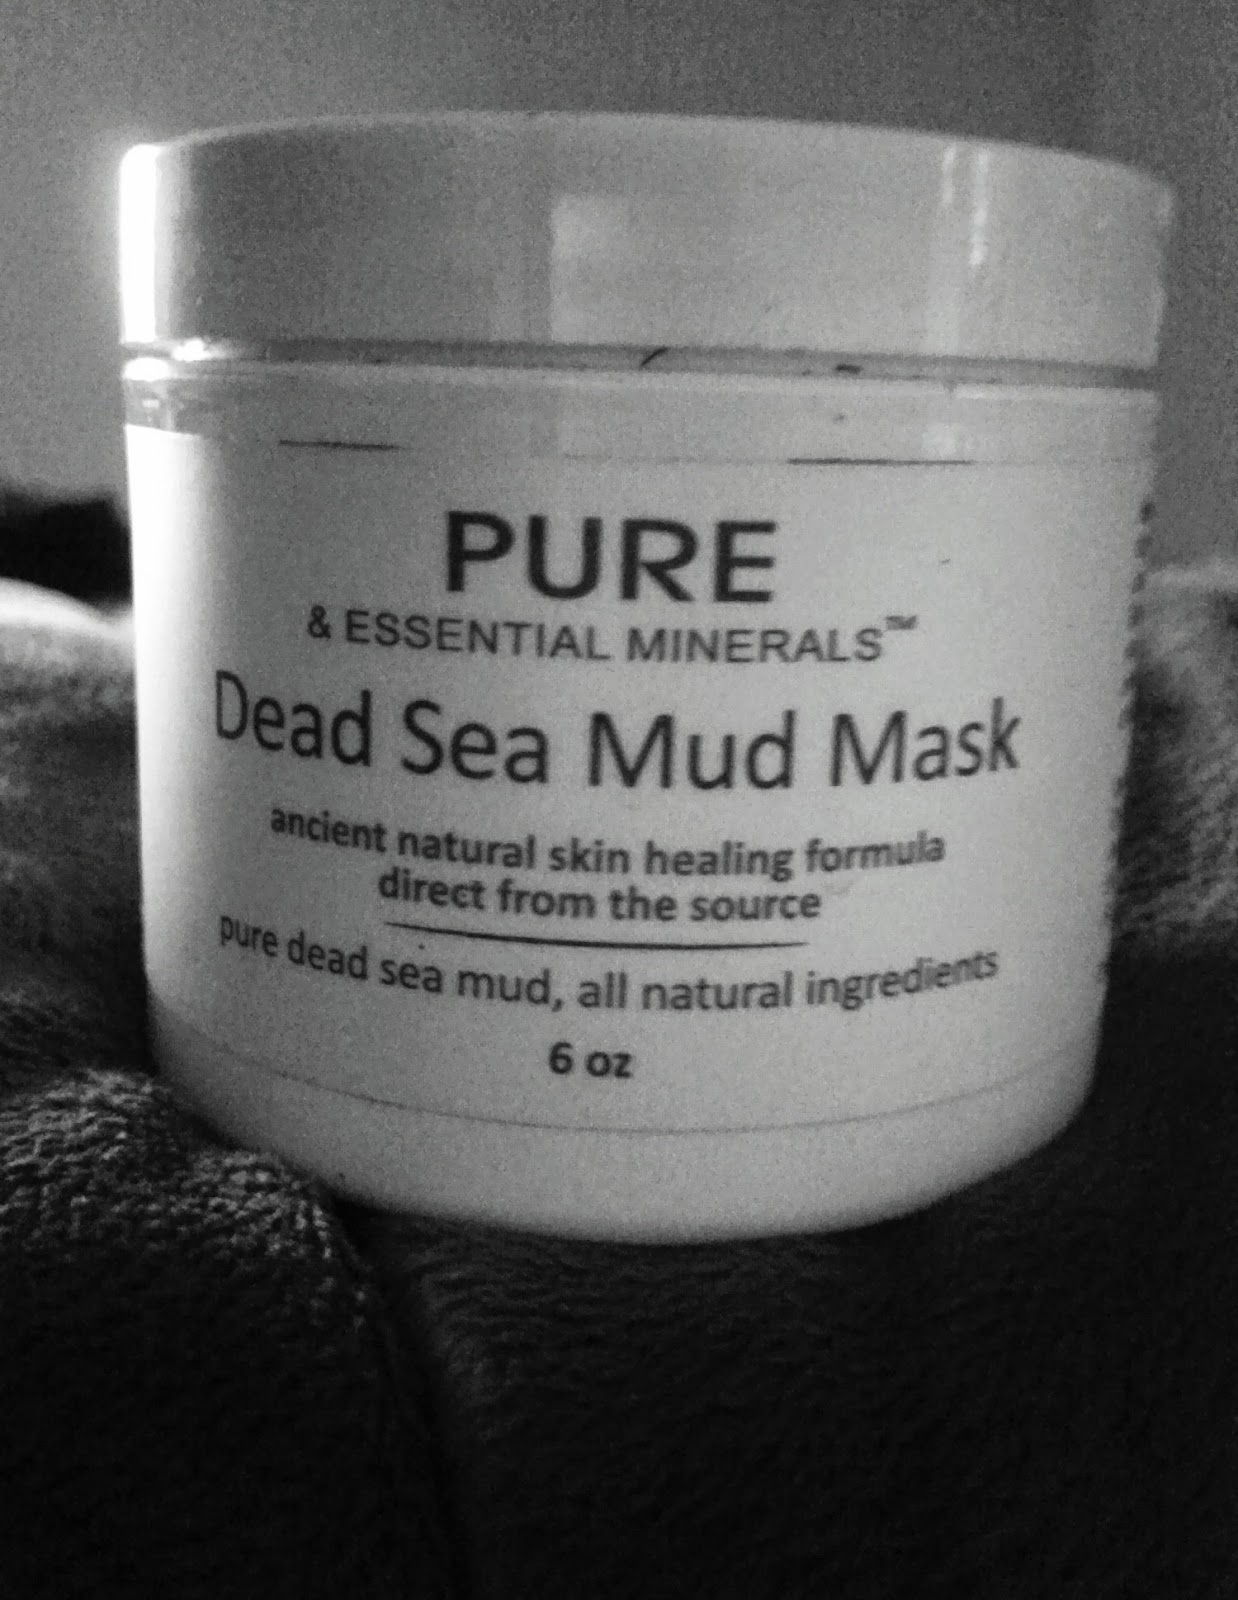 mud+mask+(2) Pure Dead Sea Mud Mask Review - Best Natural Facial Masks #deadseamudmask